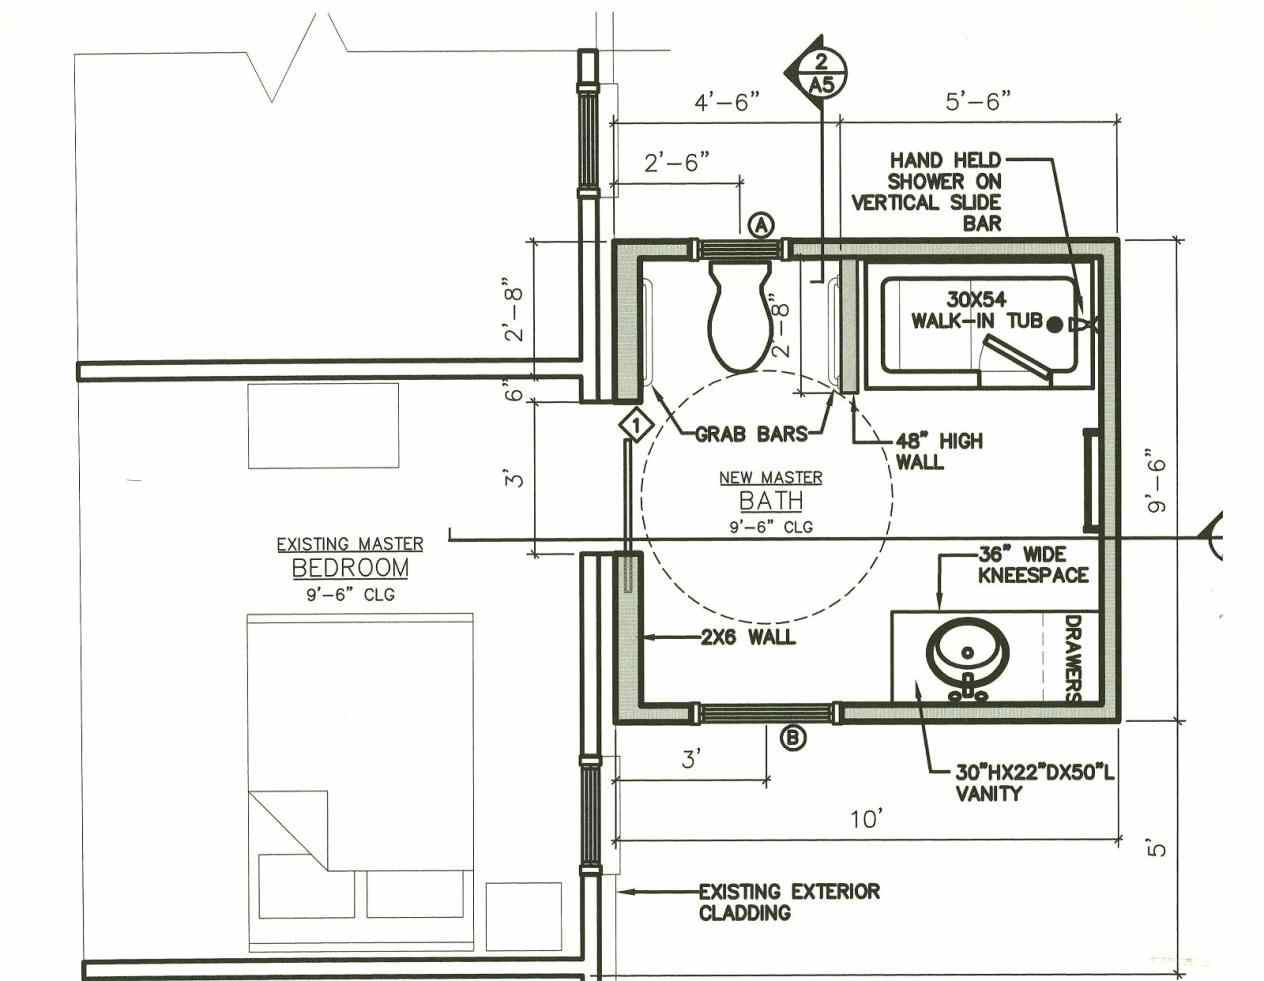 Best ideas about Small Bathroom Dimensions . Save or Pin small half bathroom dimensions Now.